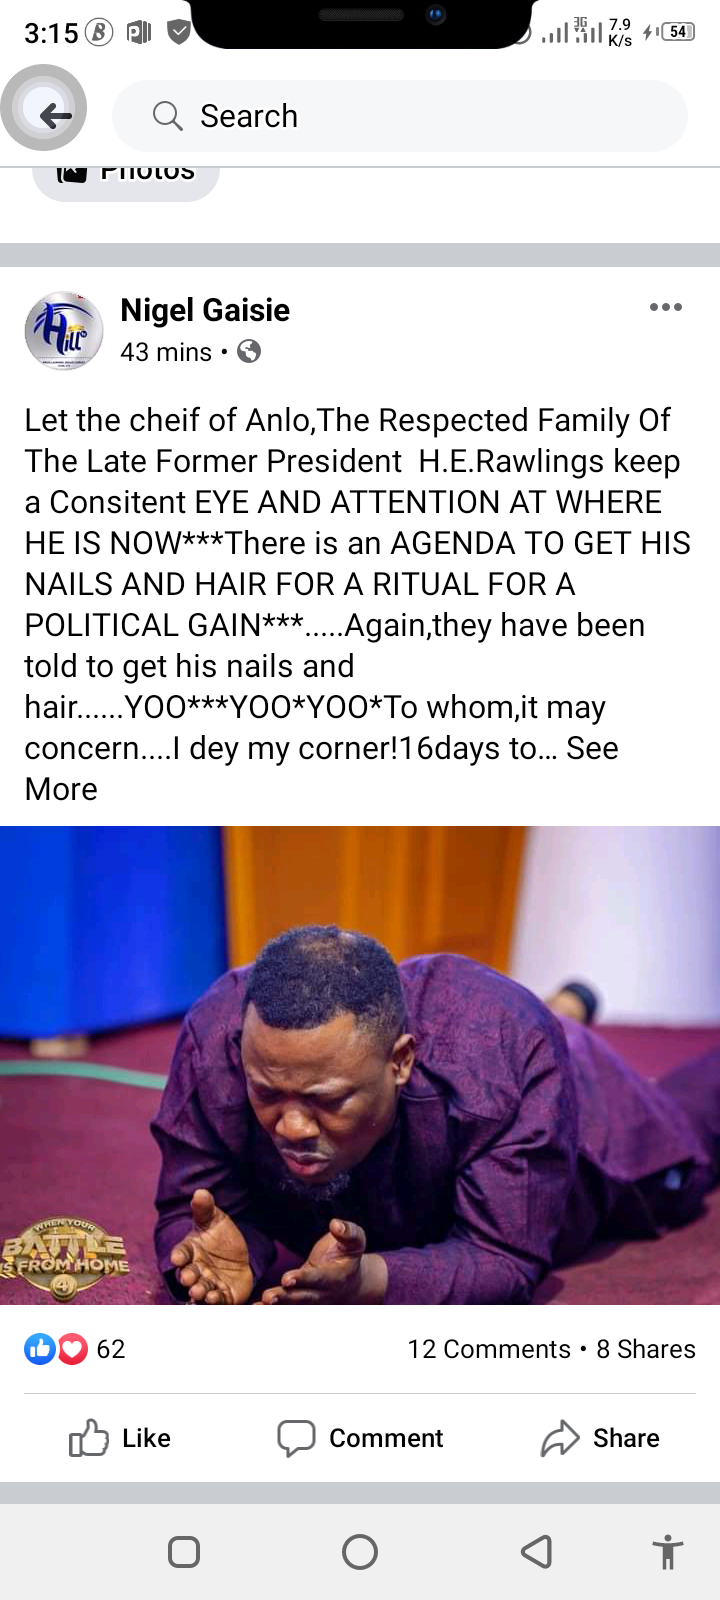 Rawlings Nails and Hair Will Be Use For Ritual - Prophet Nigel Gaise 1